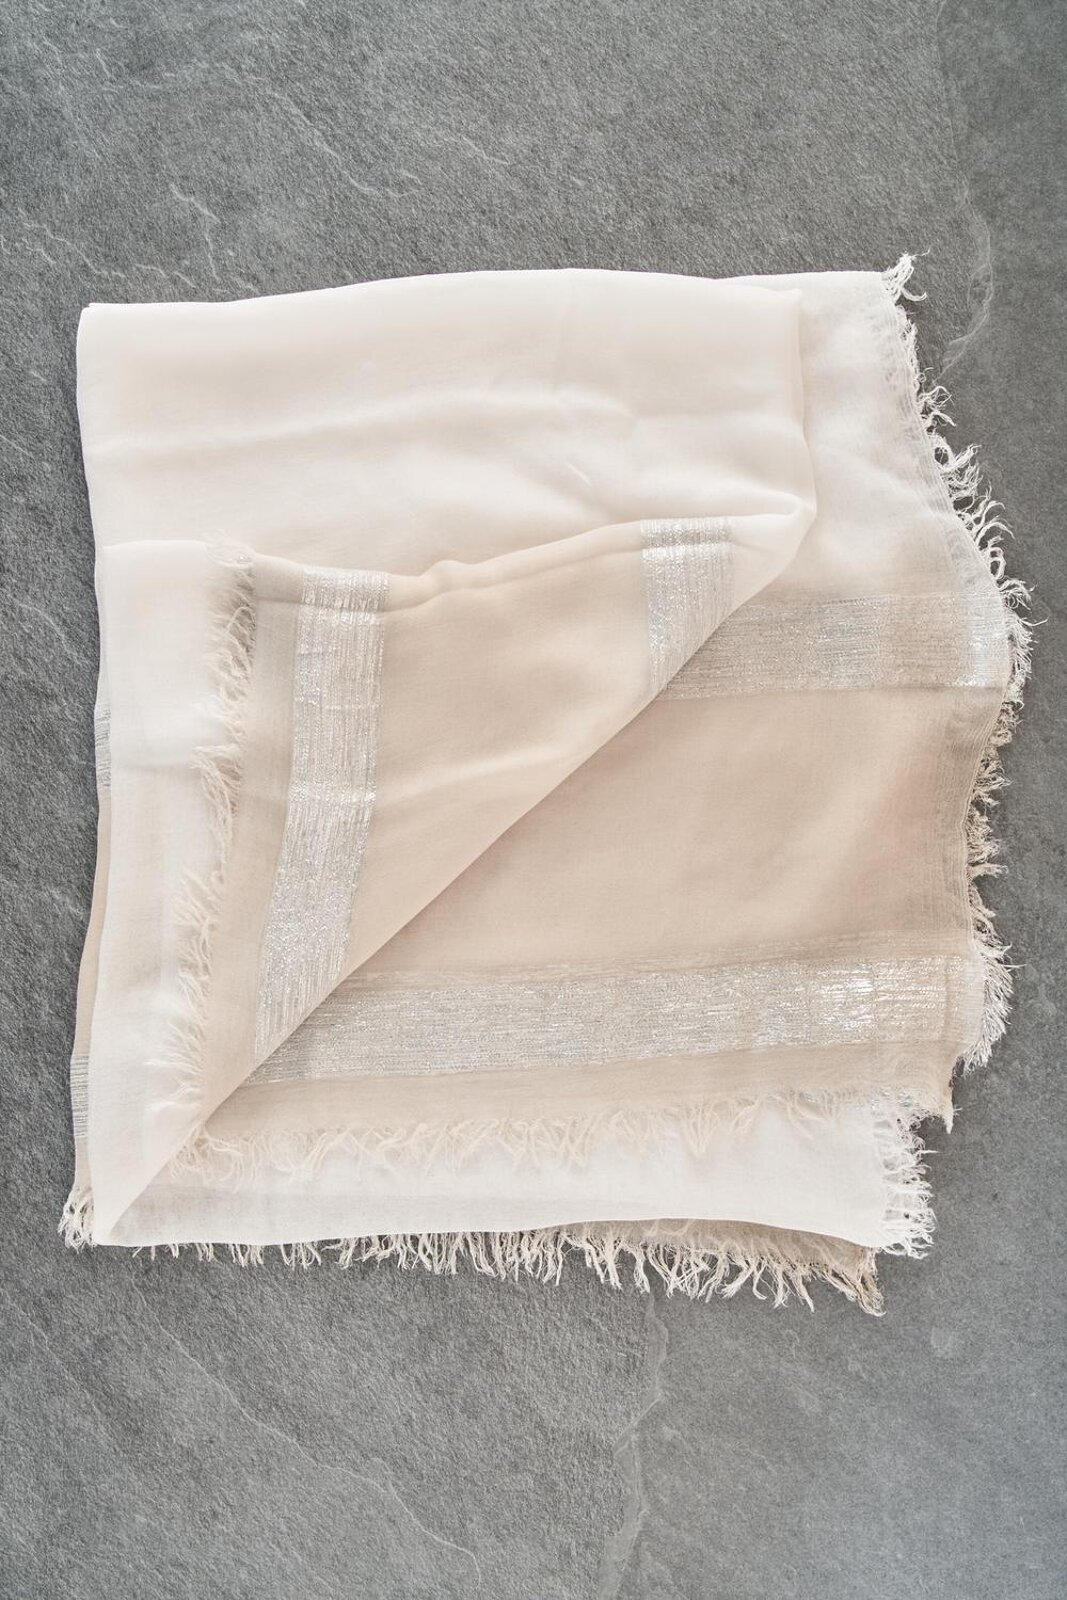 Lightweight Linen Scarf And Metallic Texture With Fringes On The Bottom. - Peserico